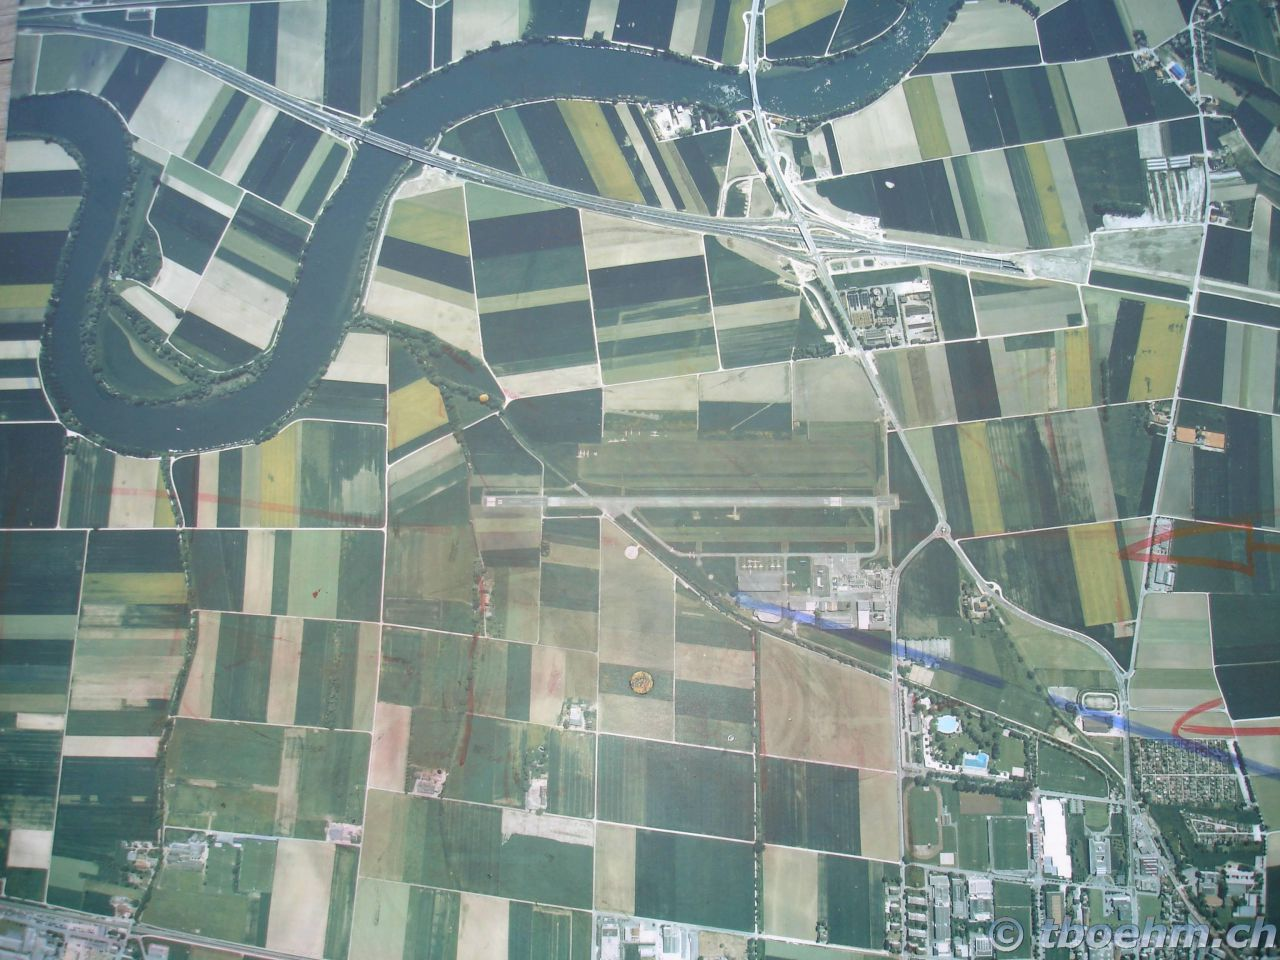 skydive_grenchen_16_07_2006_34_20121125_1205907470